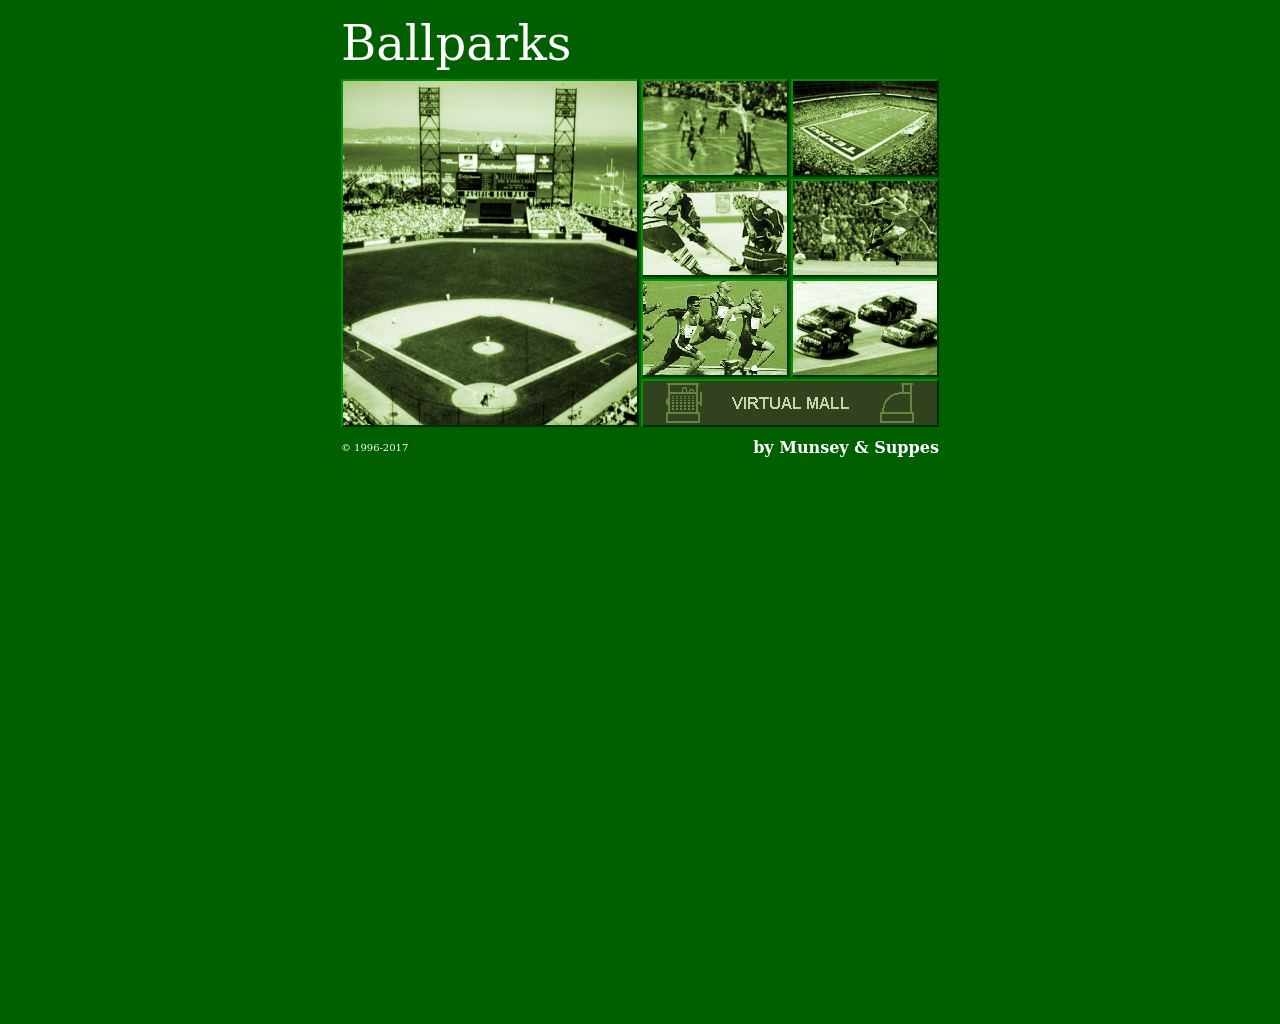 Ballparks-Advertising-Reviews-Pricing